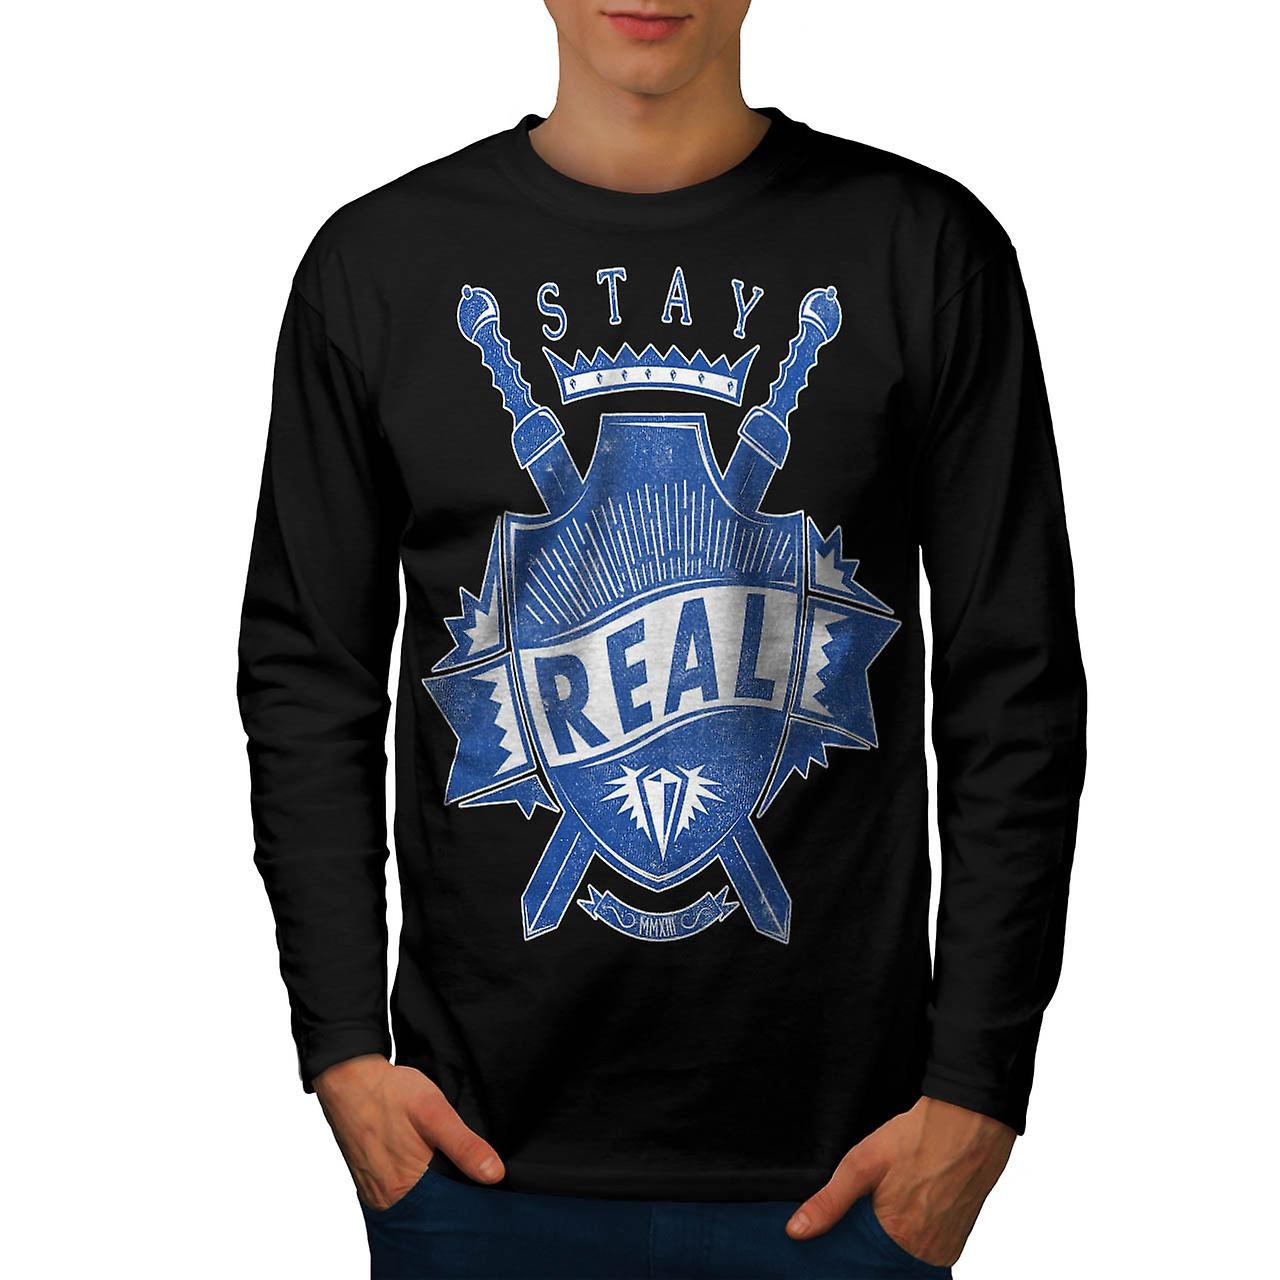 Stay Real Ambition Sword Shield Men Black Long Sleeve T-shirt | Wellcoda